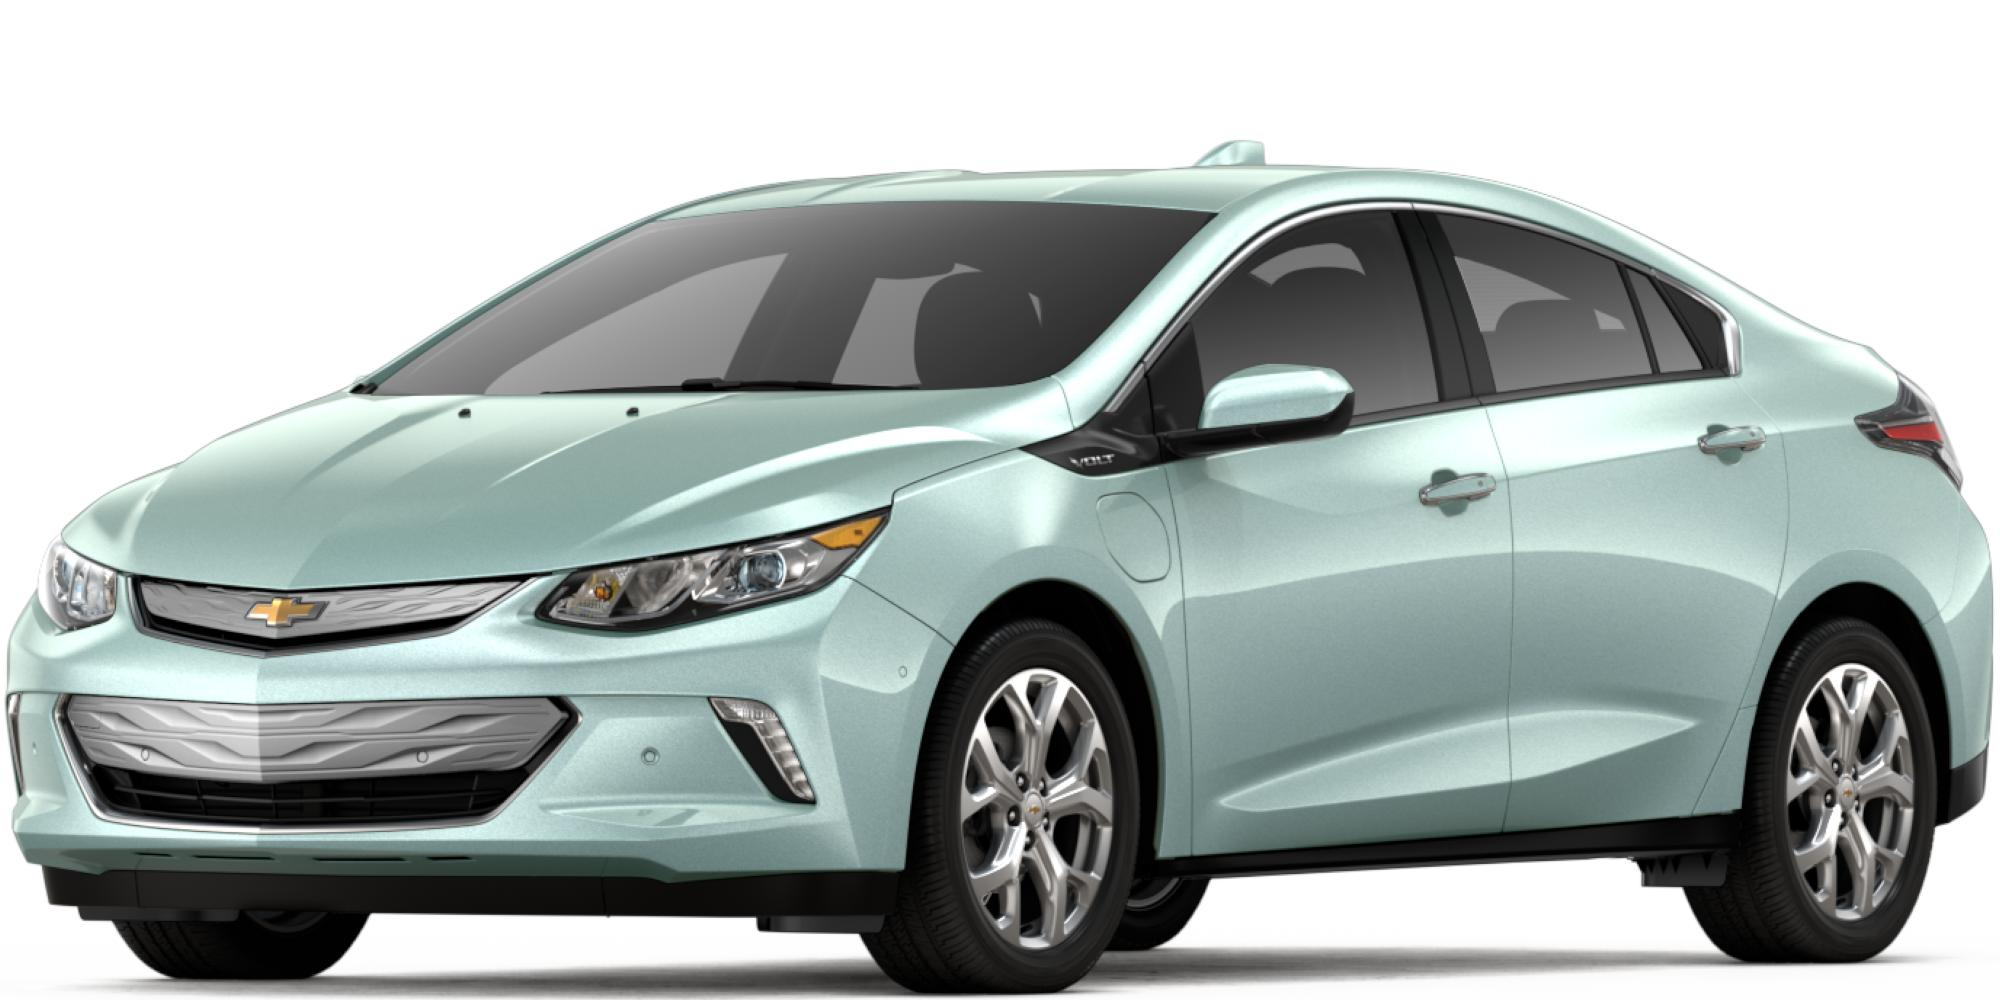 chevy battery includes charge longer s in a which new smaller store sale system economy naias will fuel drive way drives the index packs those more energy today volt autos use for that chevrolet than electric lighter on